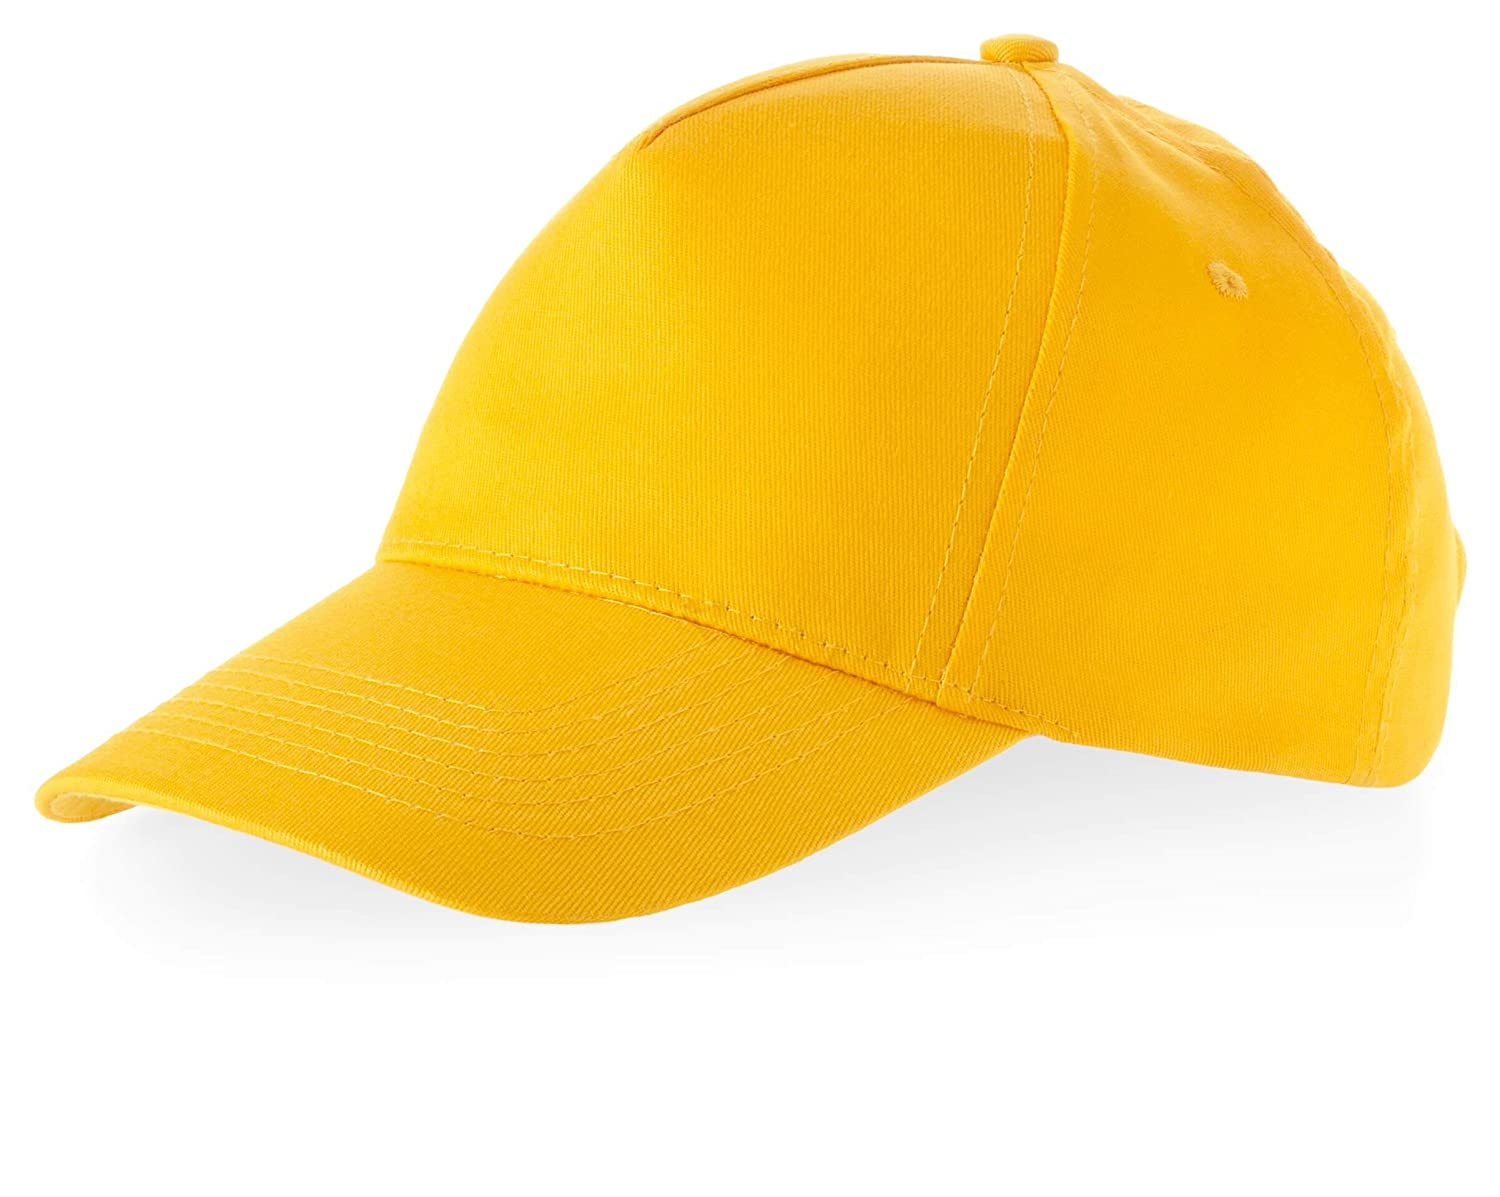 f1cc5ca0 10 x Baseball Caps - Adults or Childrens Sizes Euro Hats 12 Colours ...